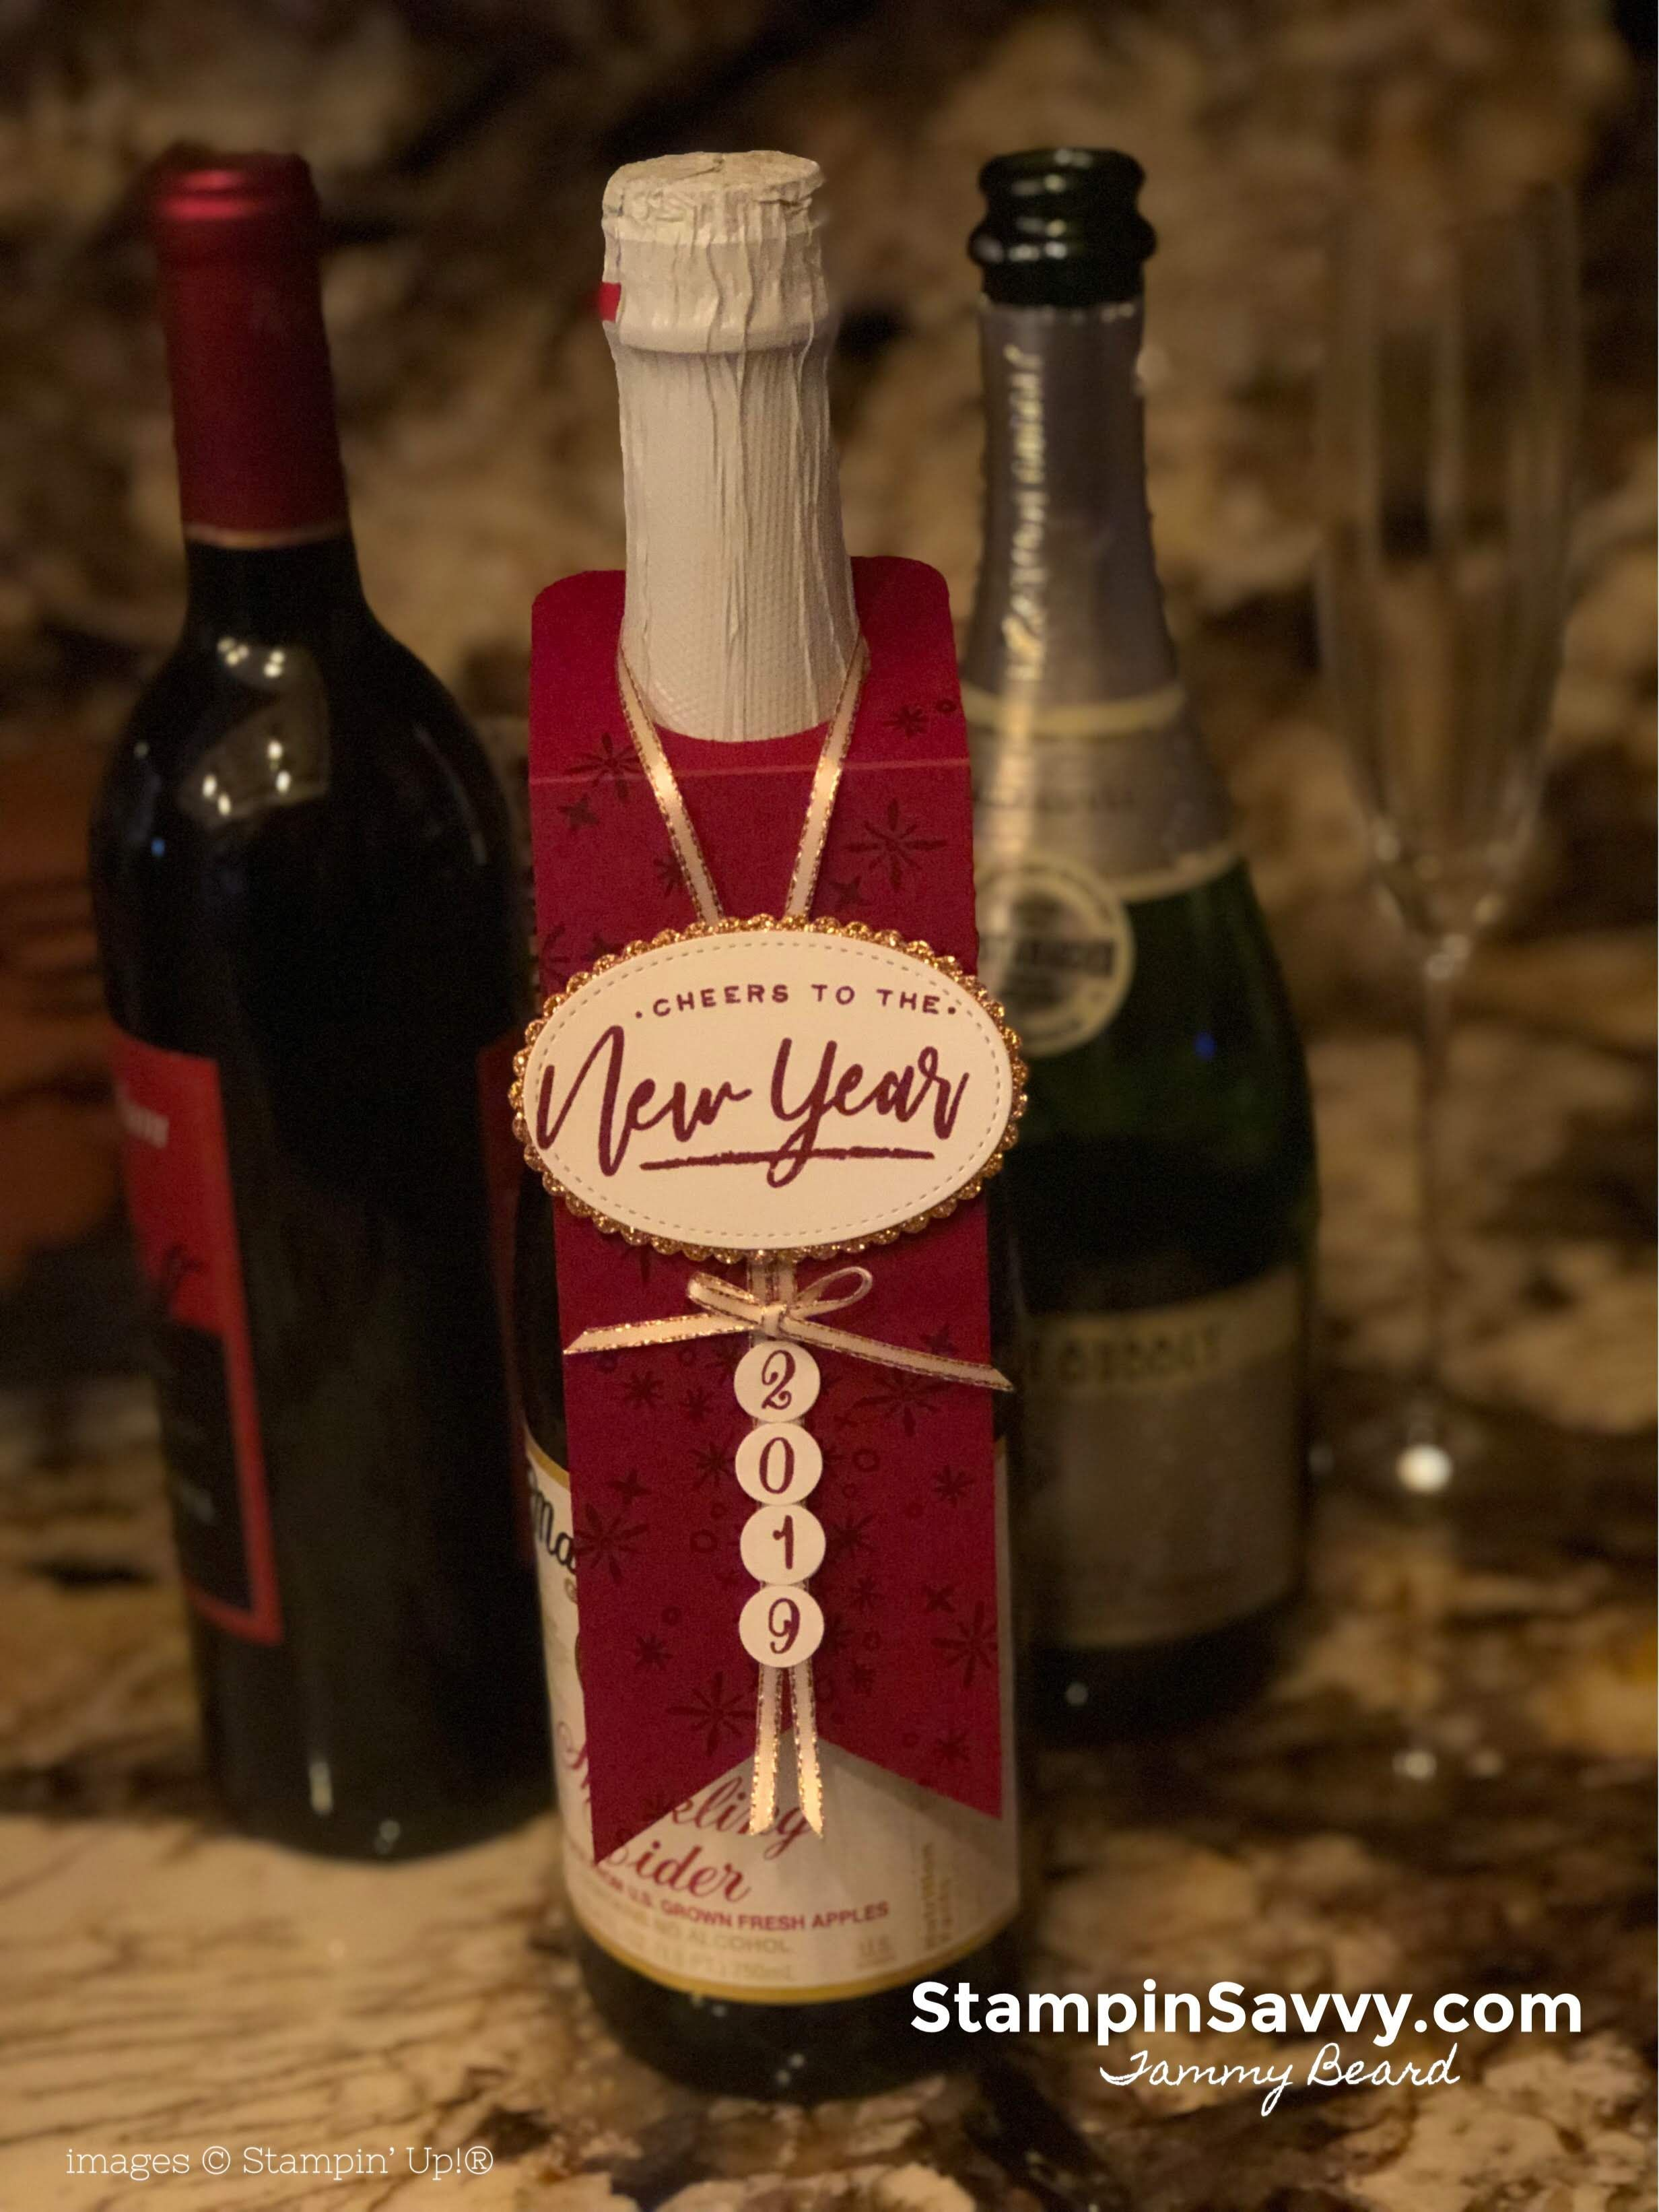 Wine Bottle Tag New Years Host Gift Stampin Savvy Wine Bottle Tags Wine Bottle Wine Bottle Gift Tags